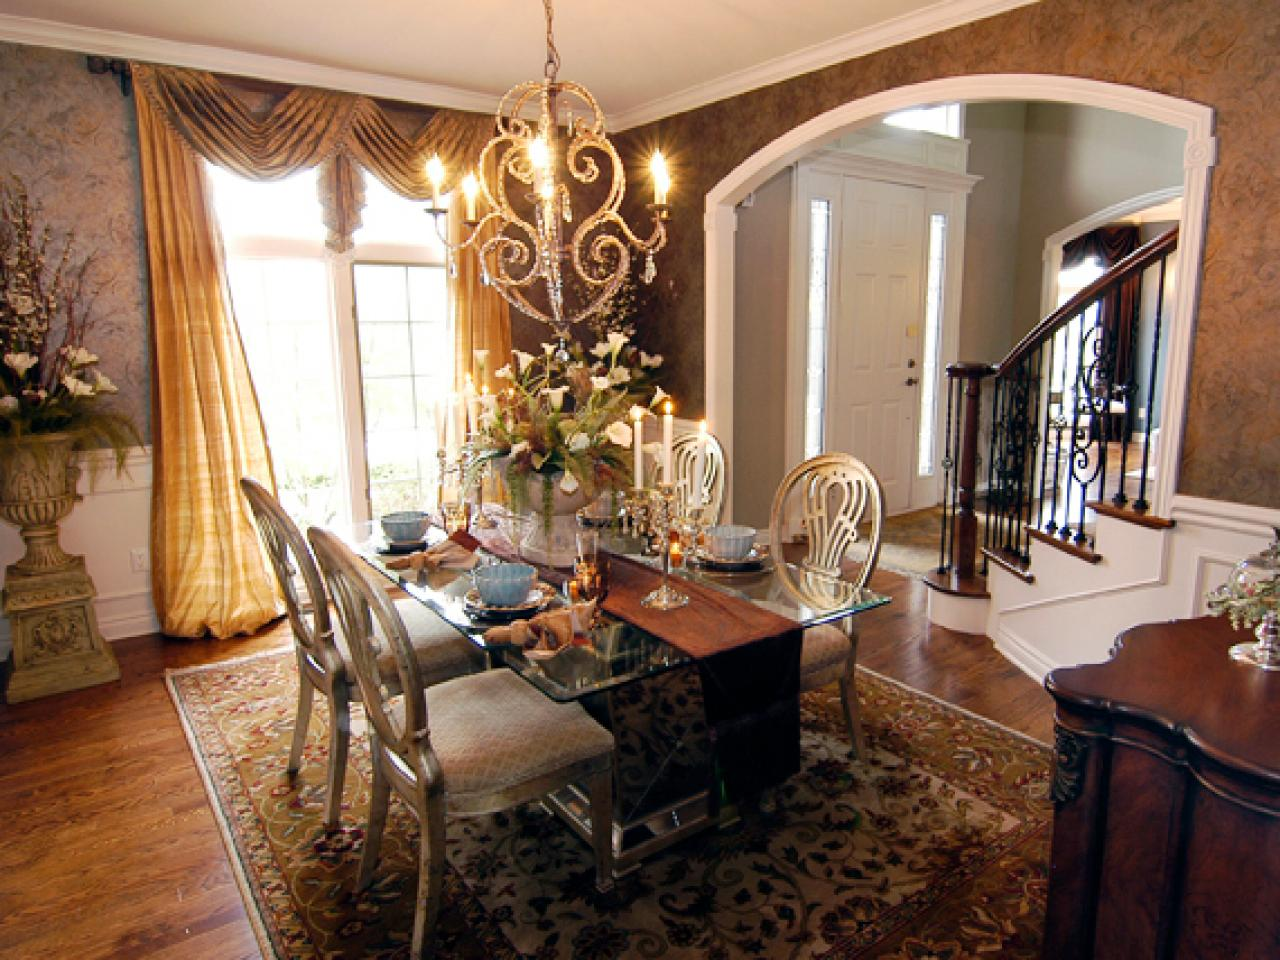 Budget friendly dining room updates from expert designers Dining room living room ideas